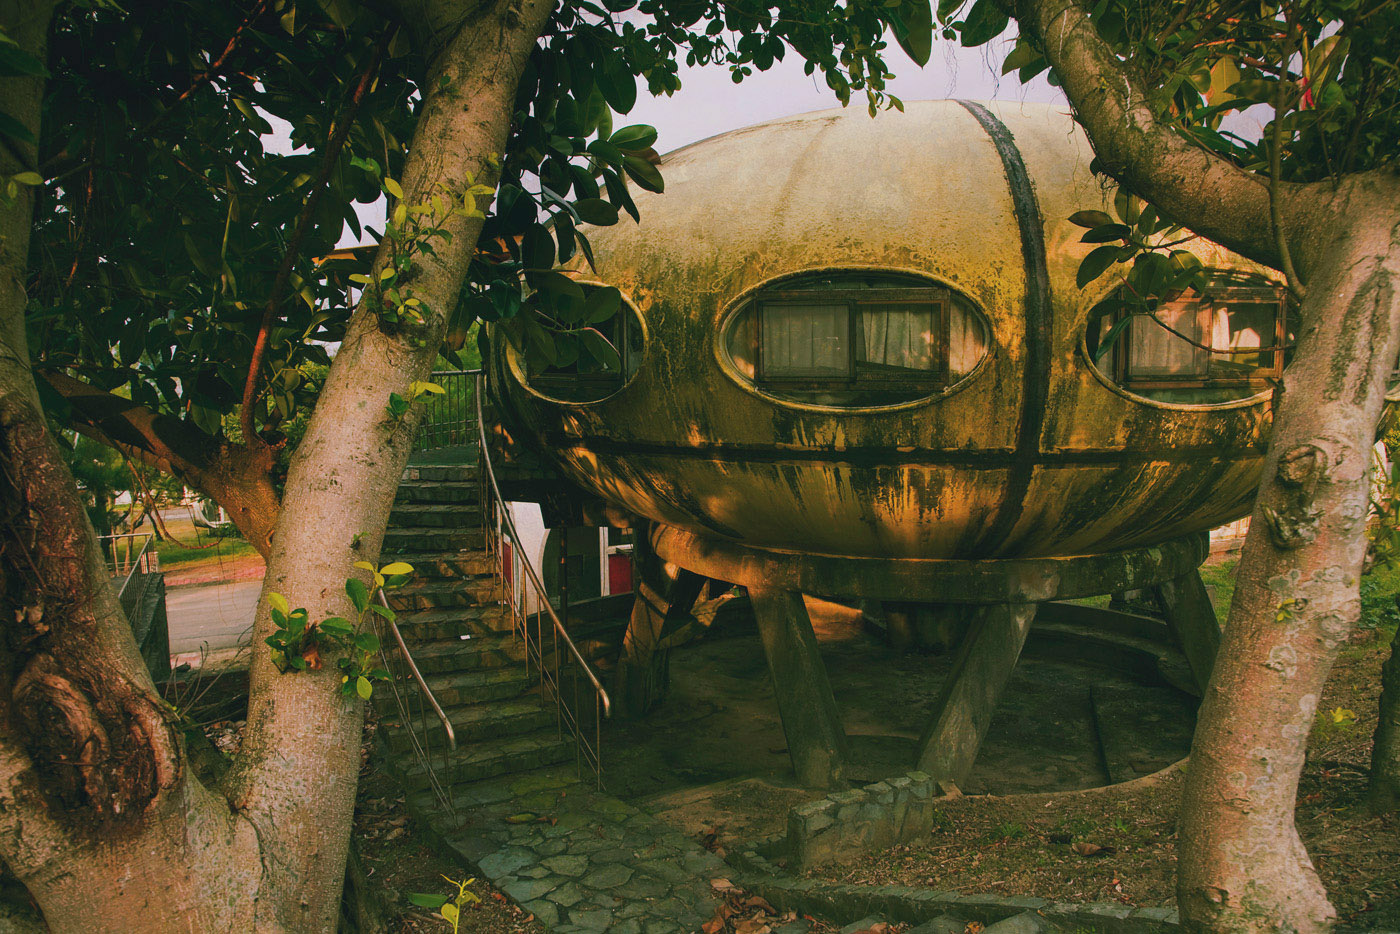 Futuro house. Author: Philipp Chistyakov Photography